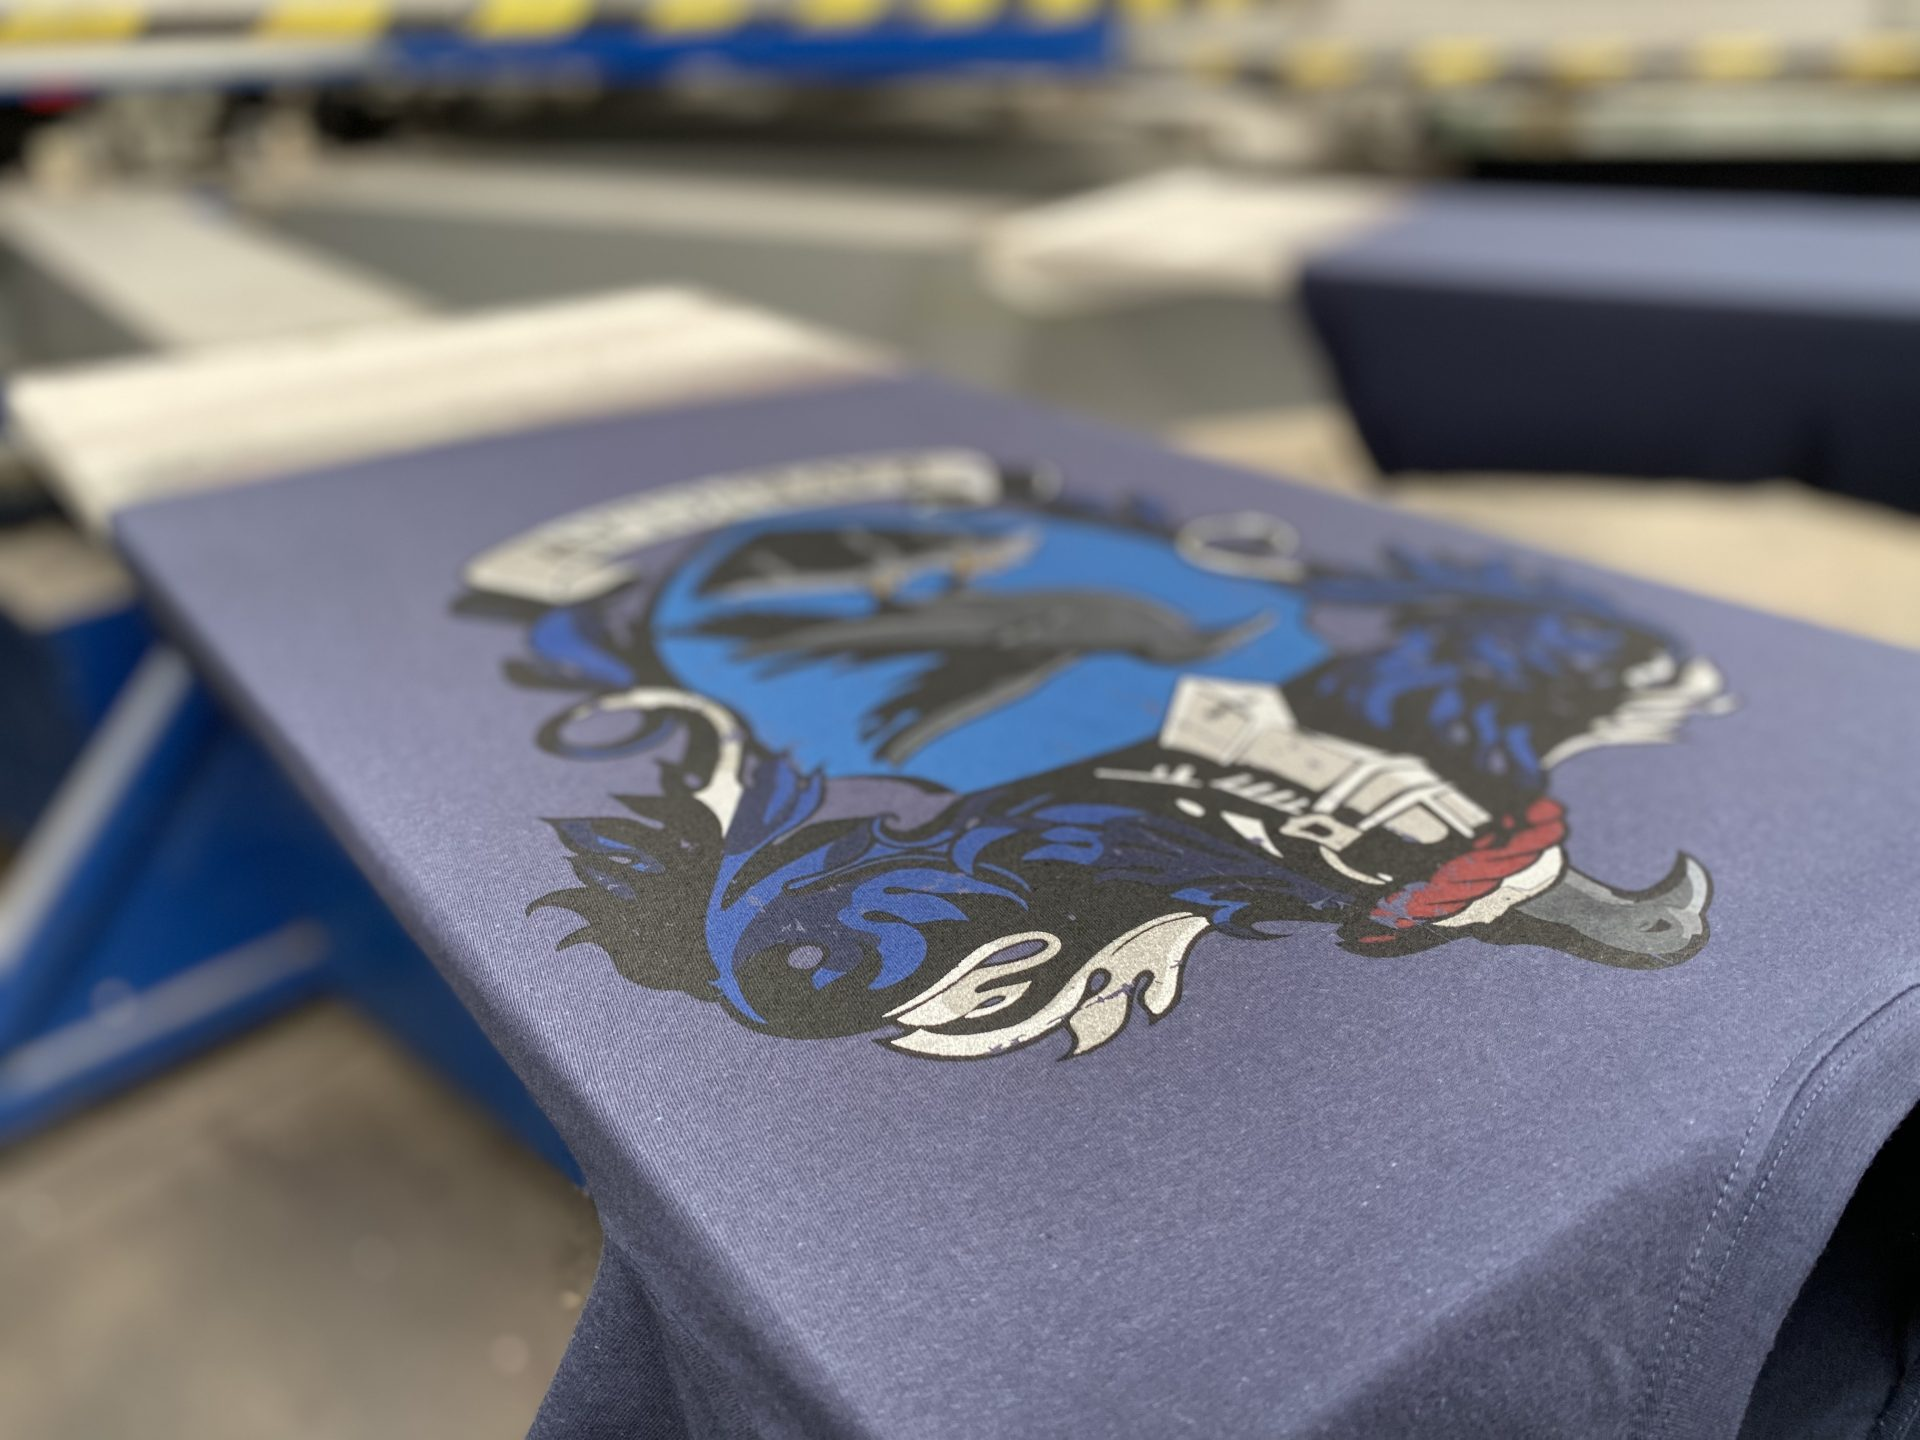 Ravenclaw t-shirt with metallic ink details on the printing press at Paul Britow's